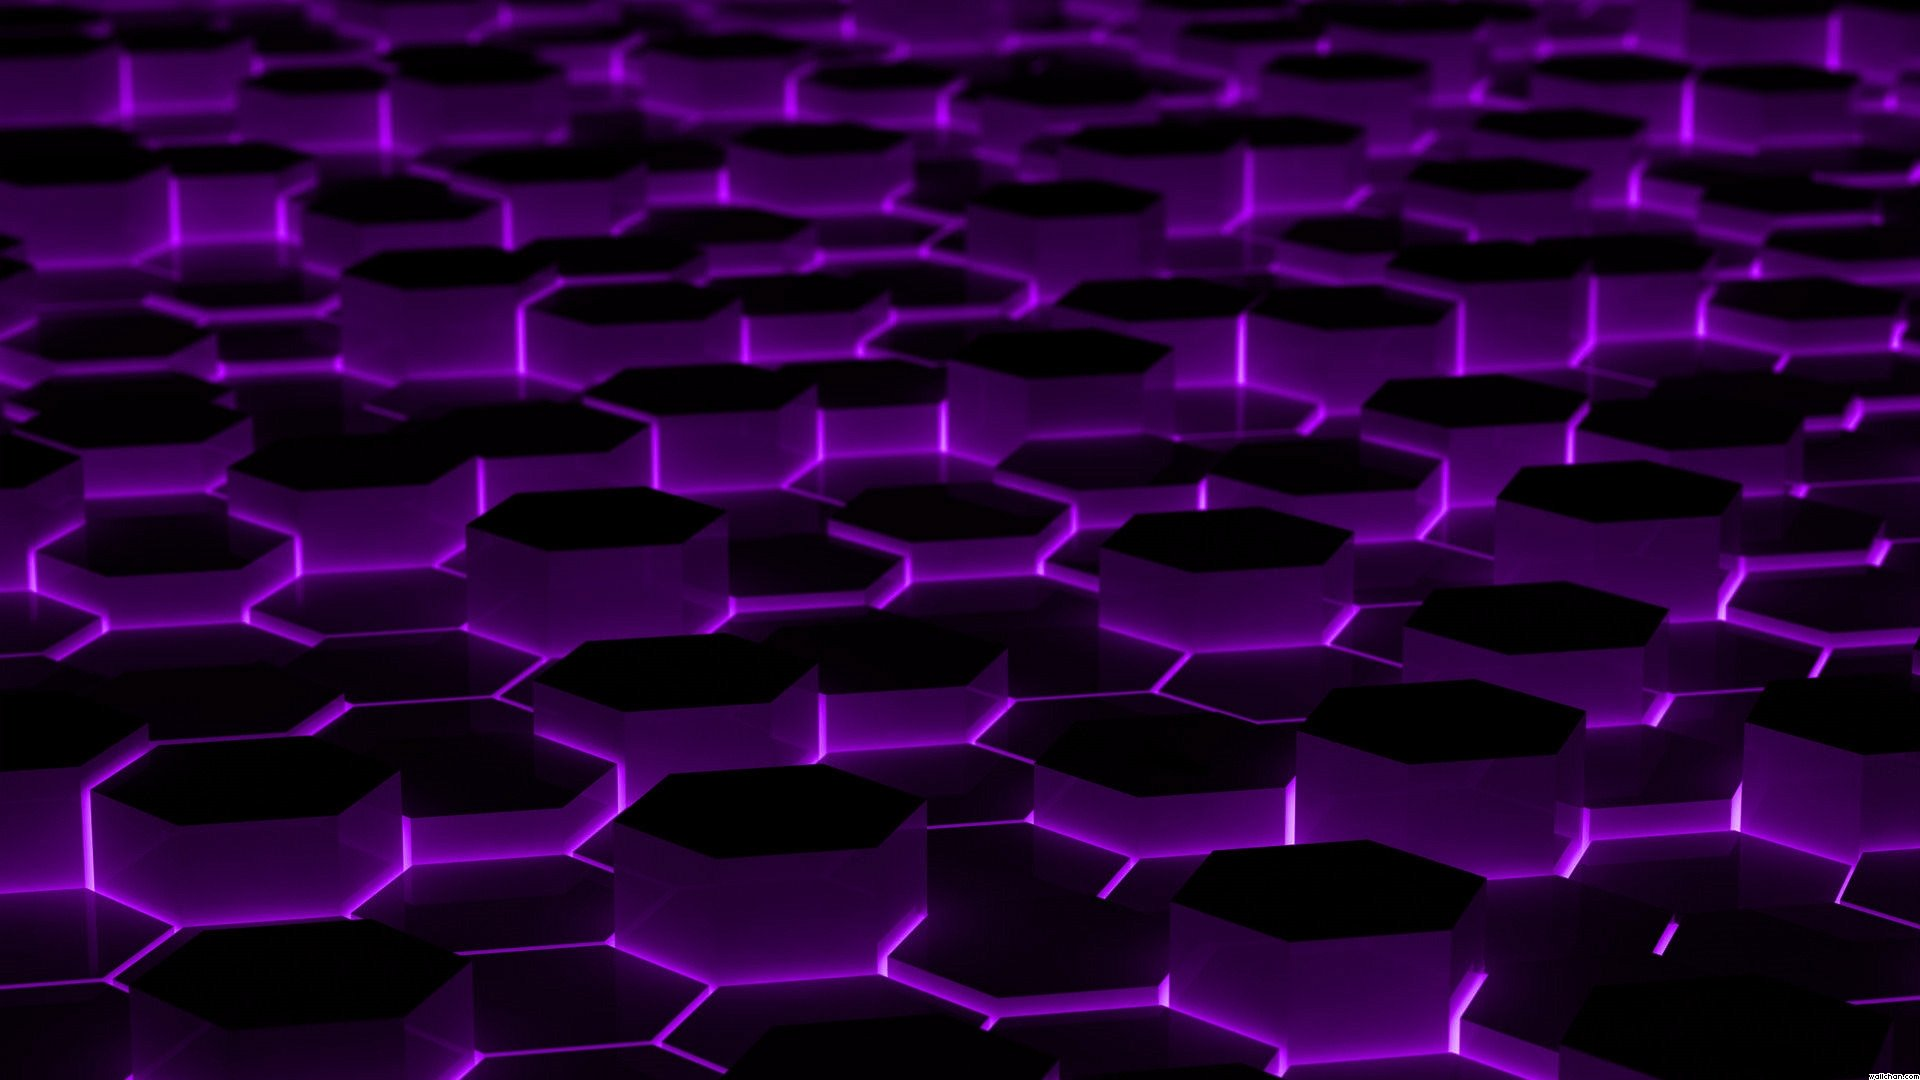 Black Purple Wallpaper - WallpaperSafari